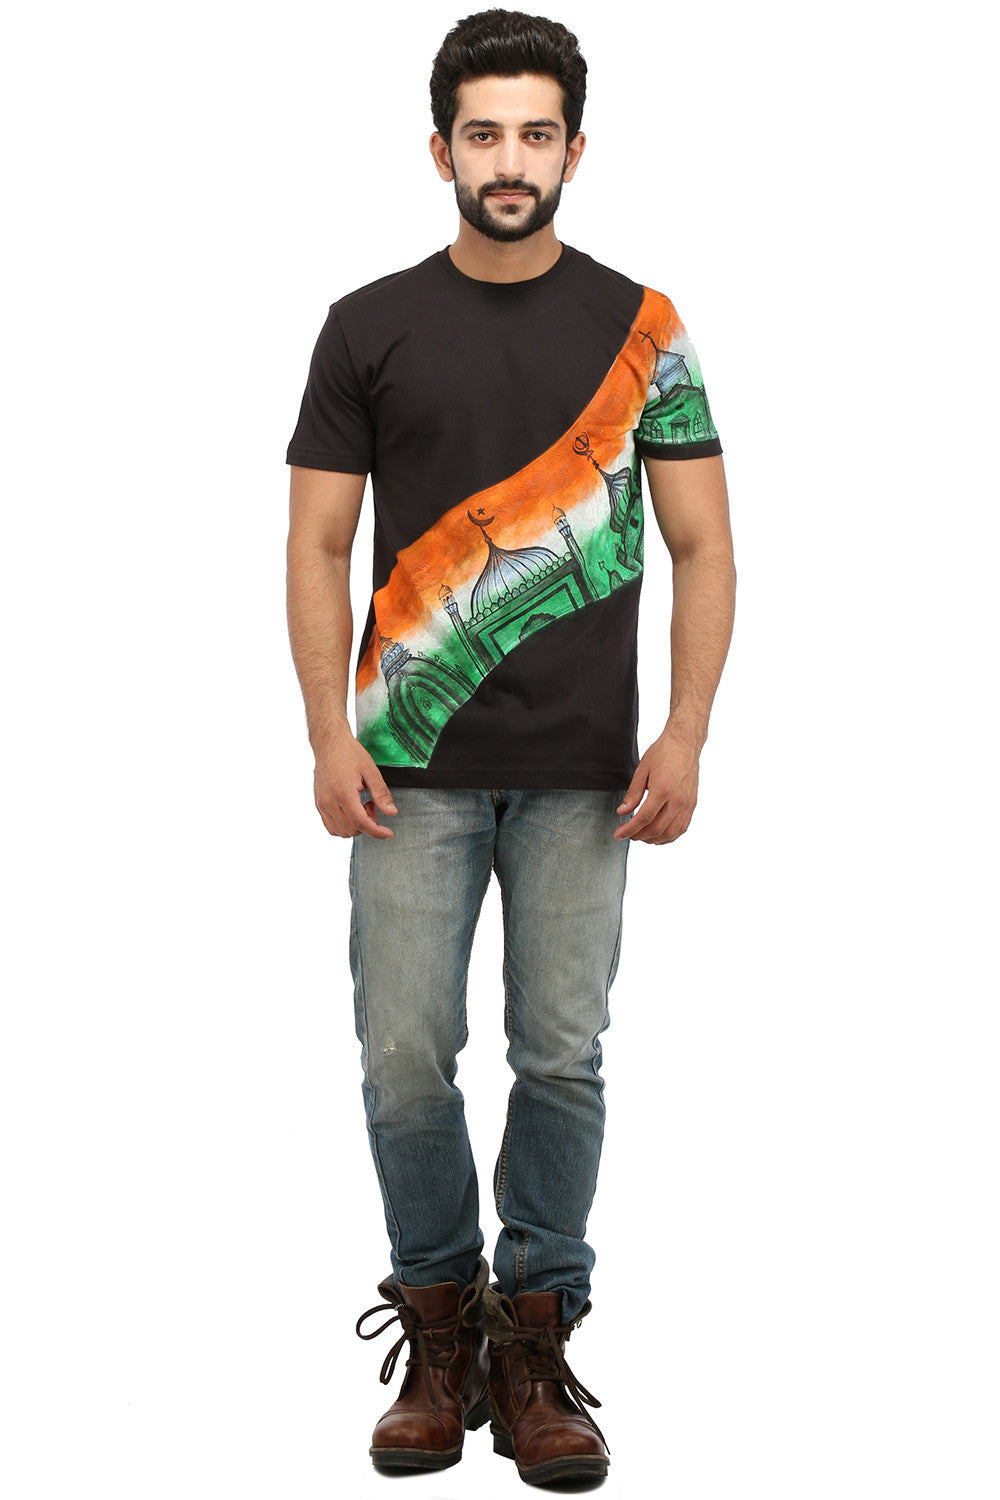 Hand-painted Unified India Black T-shirt - Rang Rage  - 4